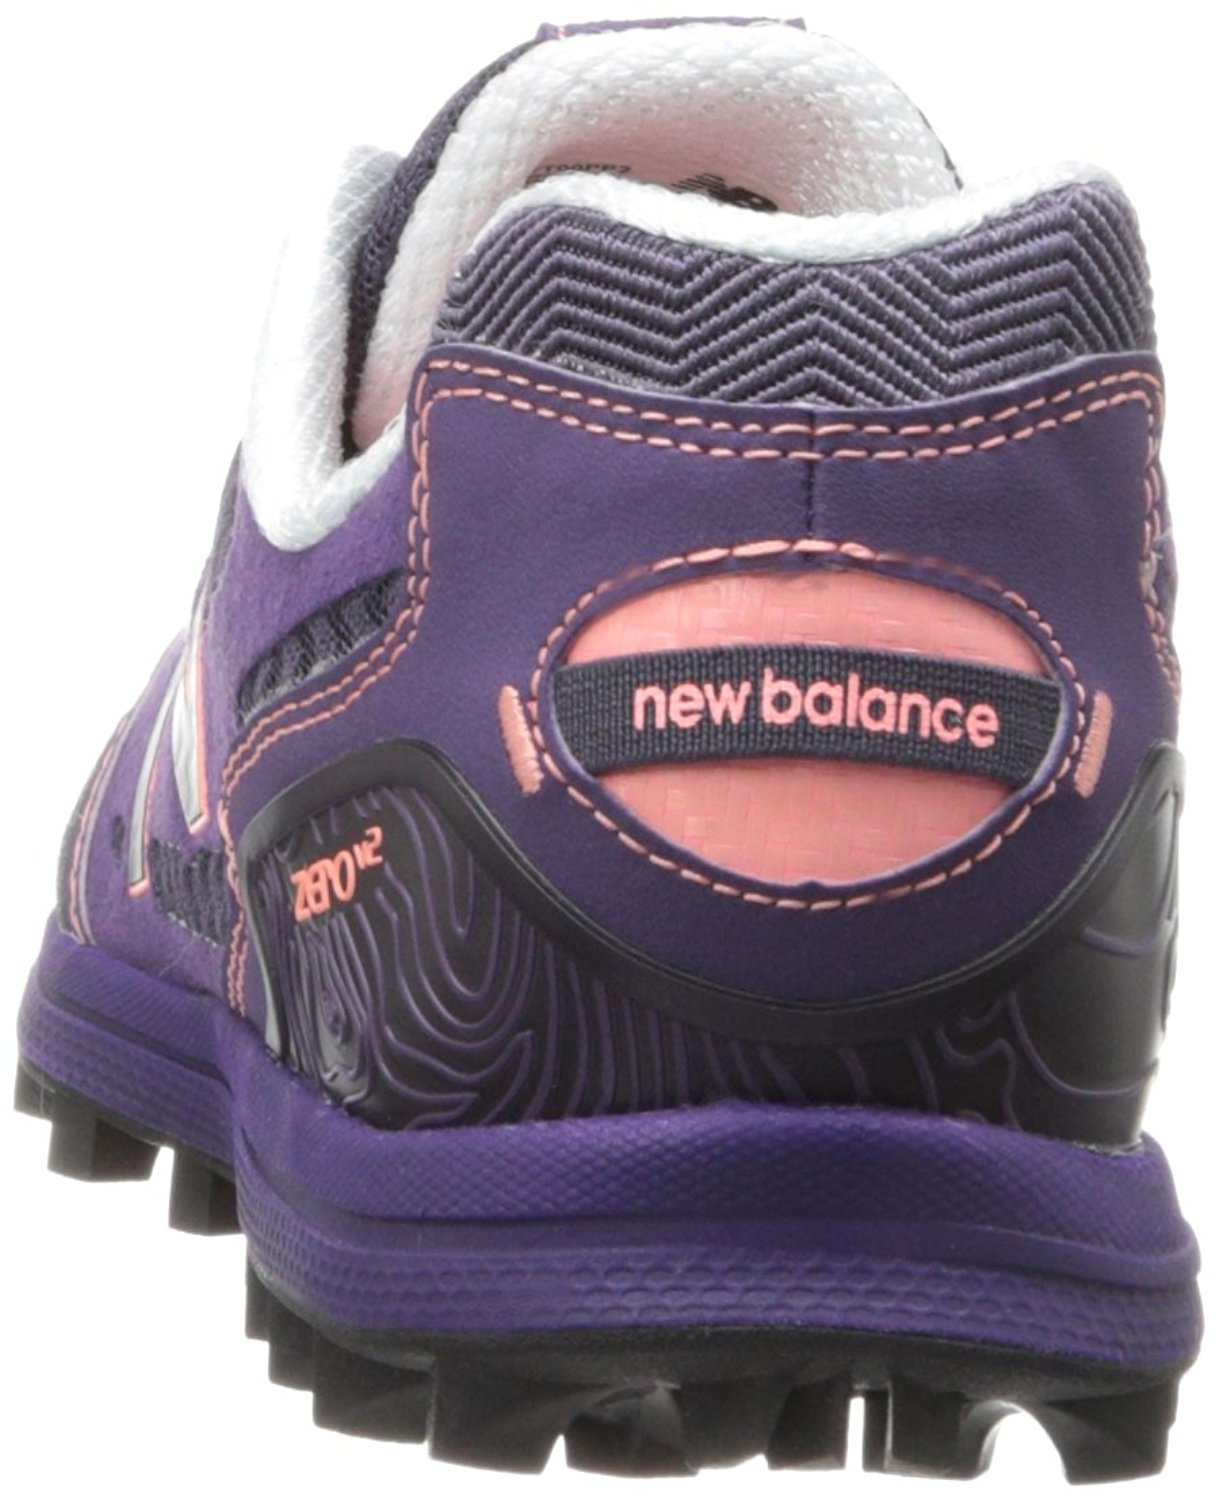 New Balance Womens WT00 Low Top Lace Up Running Sneaker | eBay